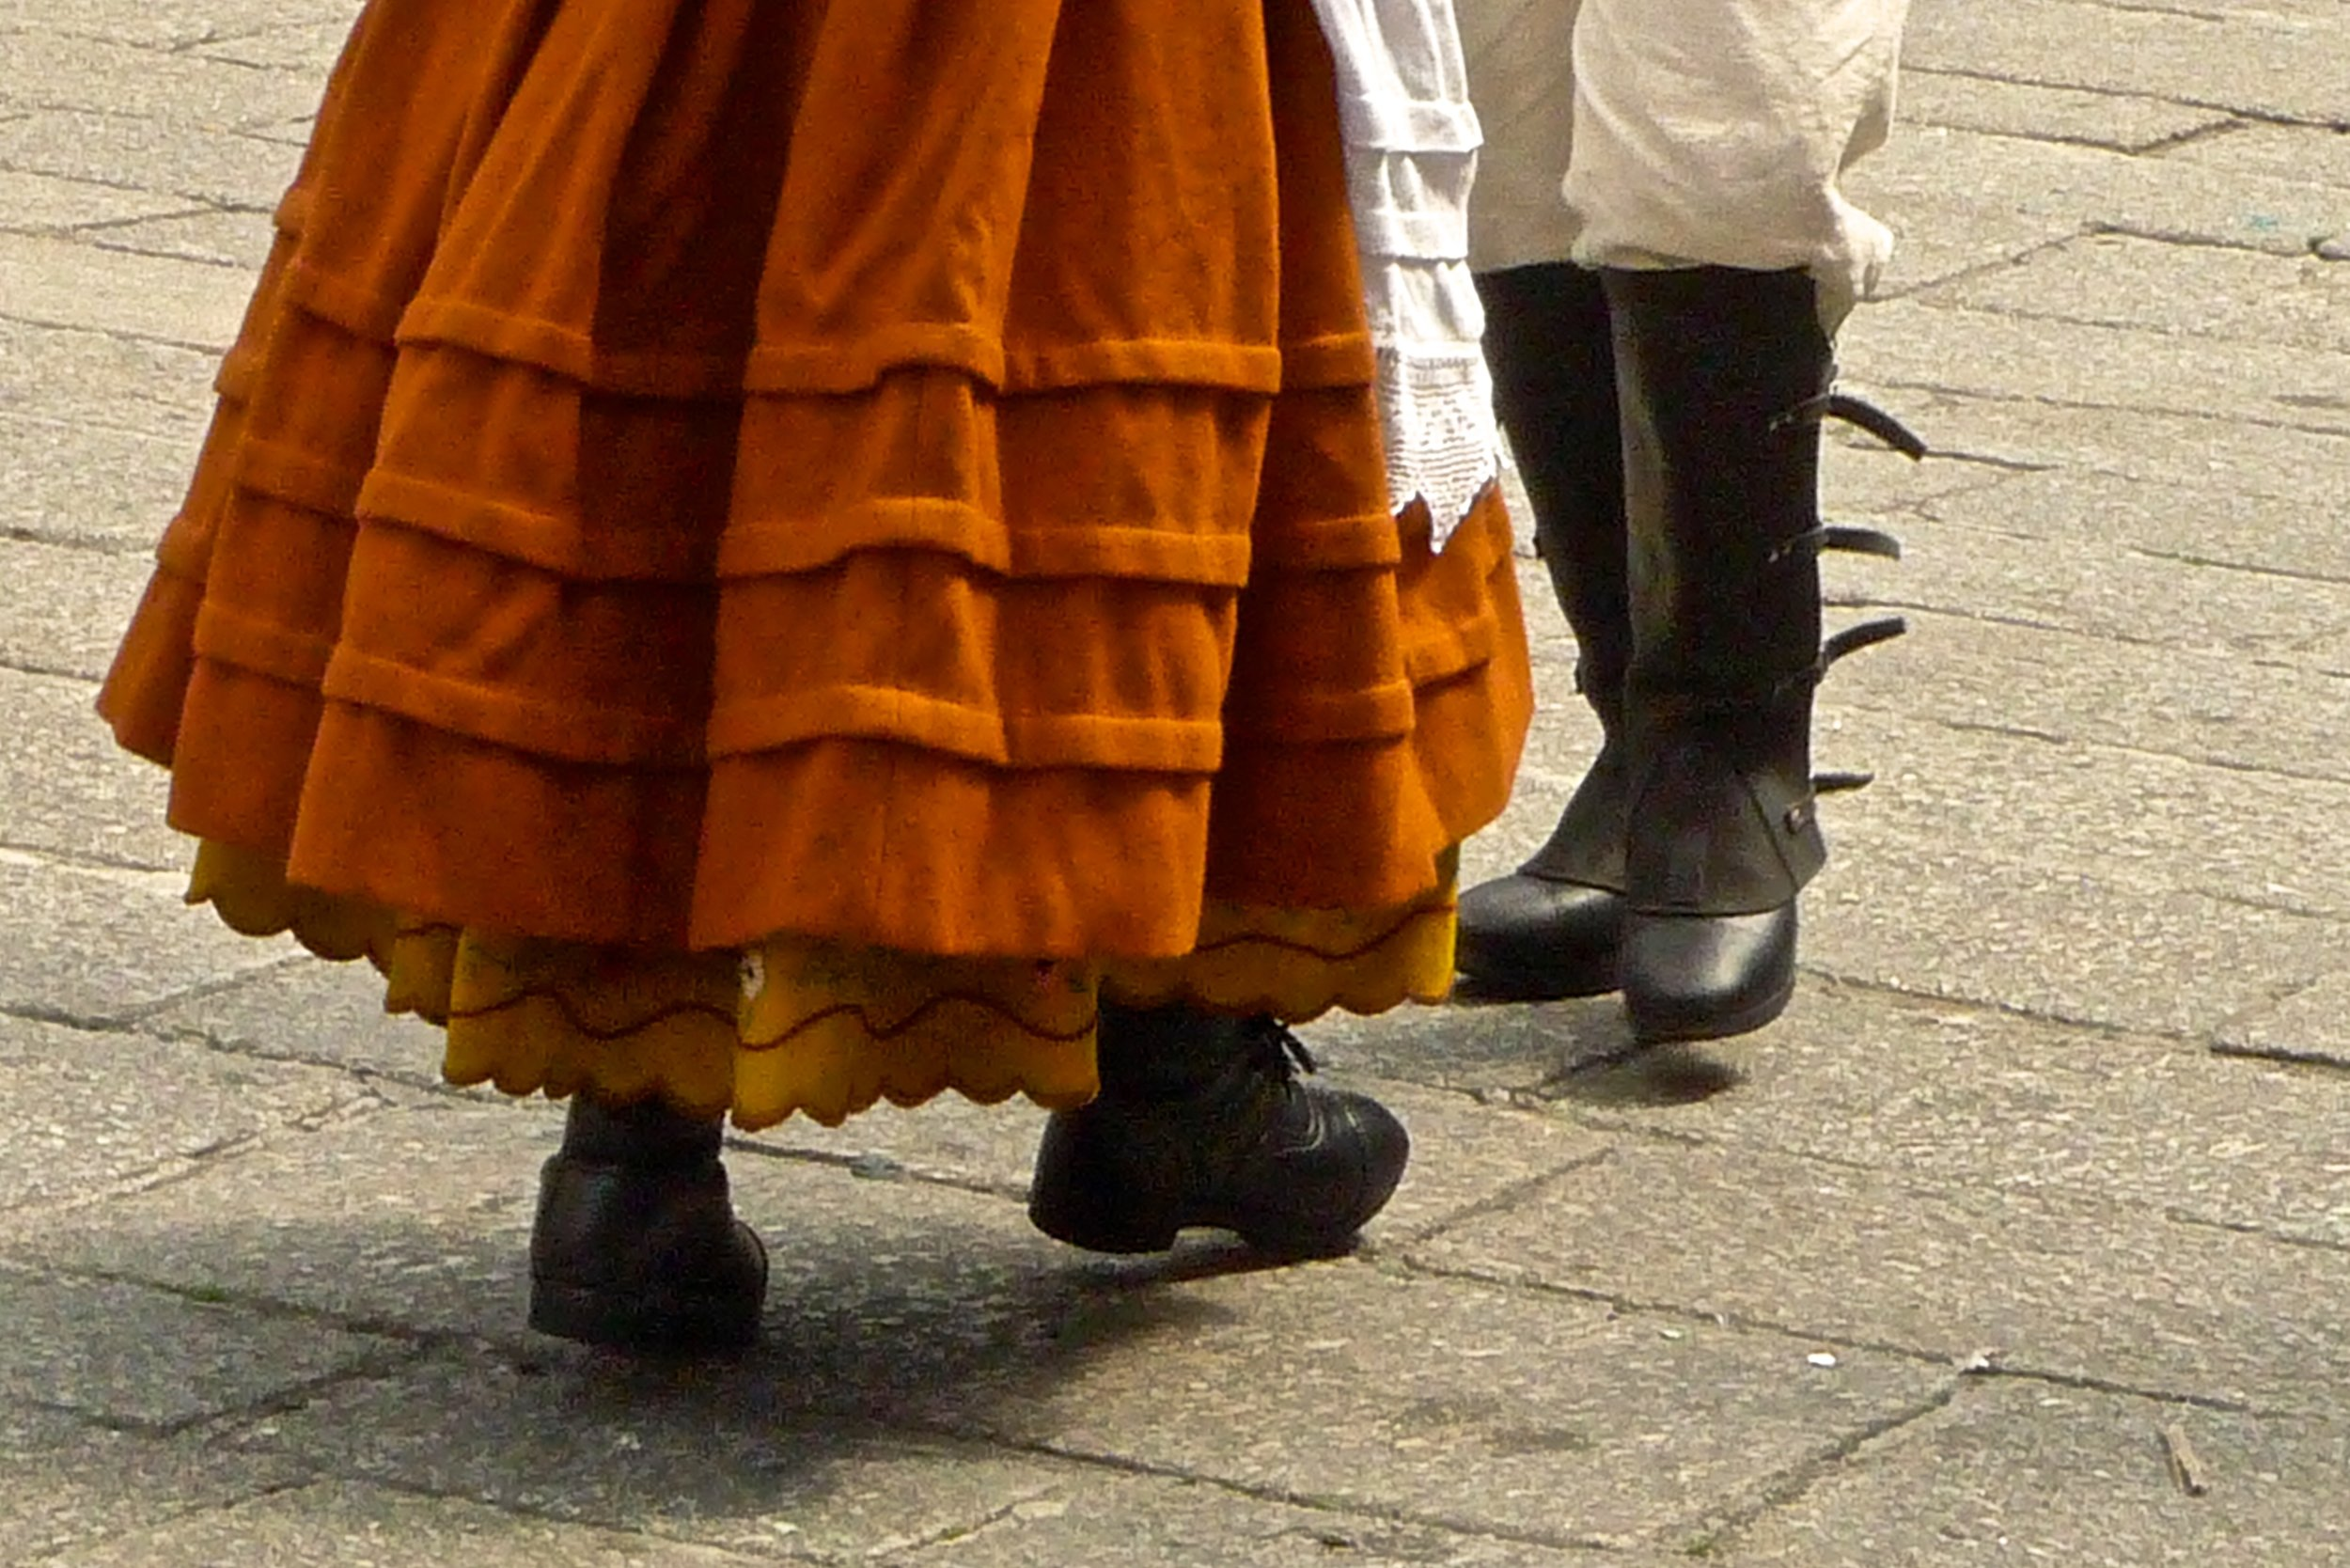 Dancing the traditional muñeira